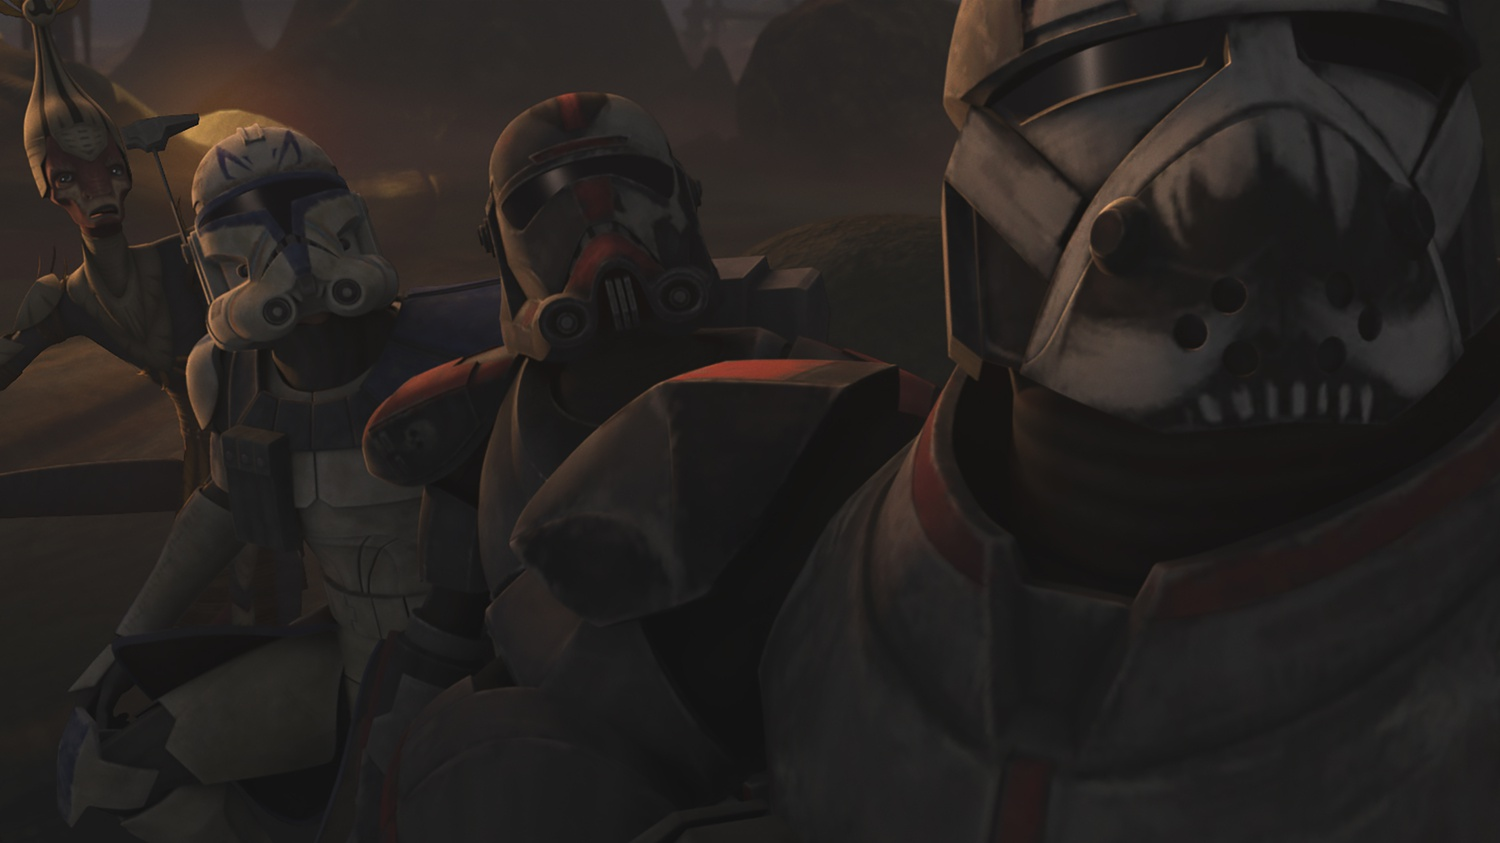 The Clones help defend native people against a droid attack.